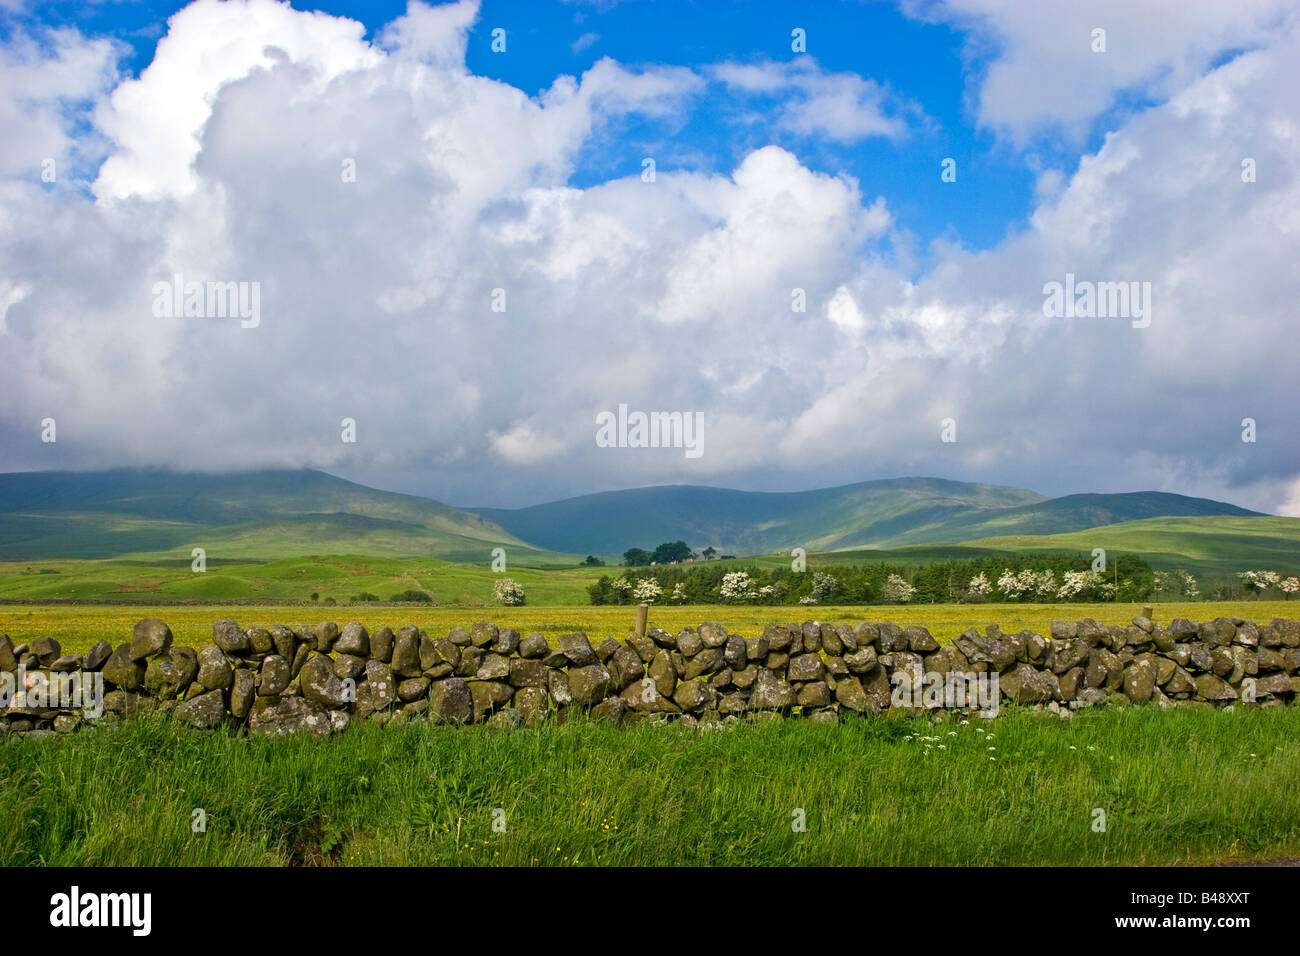 Countryside near Carsphairn Dumfries and Galloway Scotland UK 2008 - Stock Image